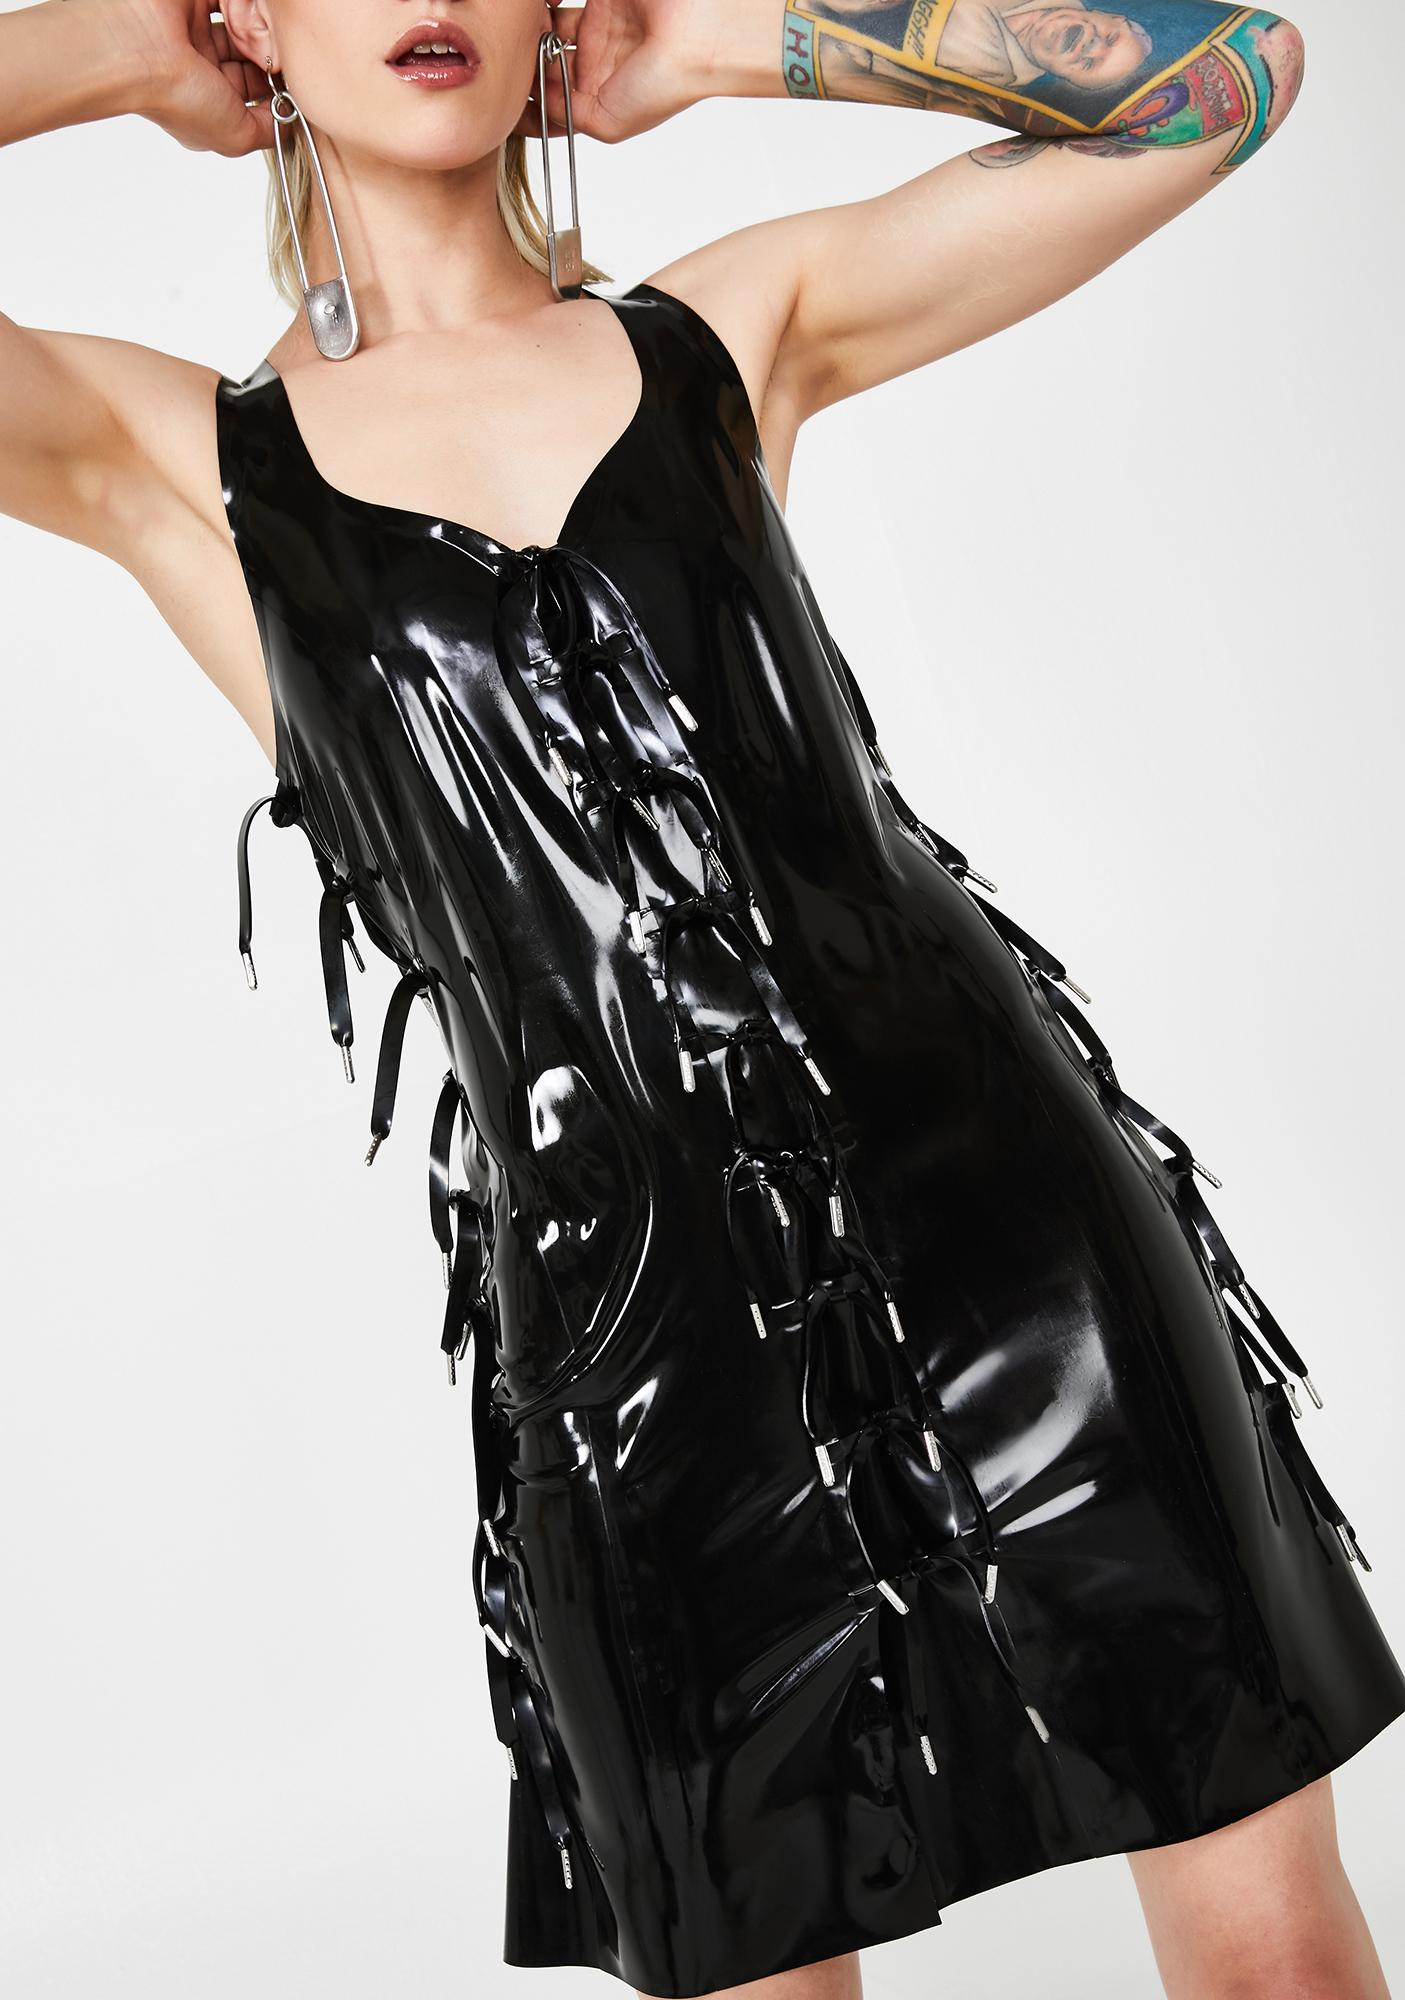 Hanger Expando Latex Dress